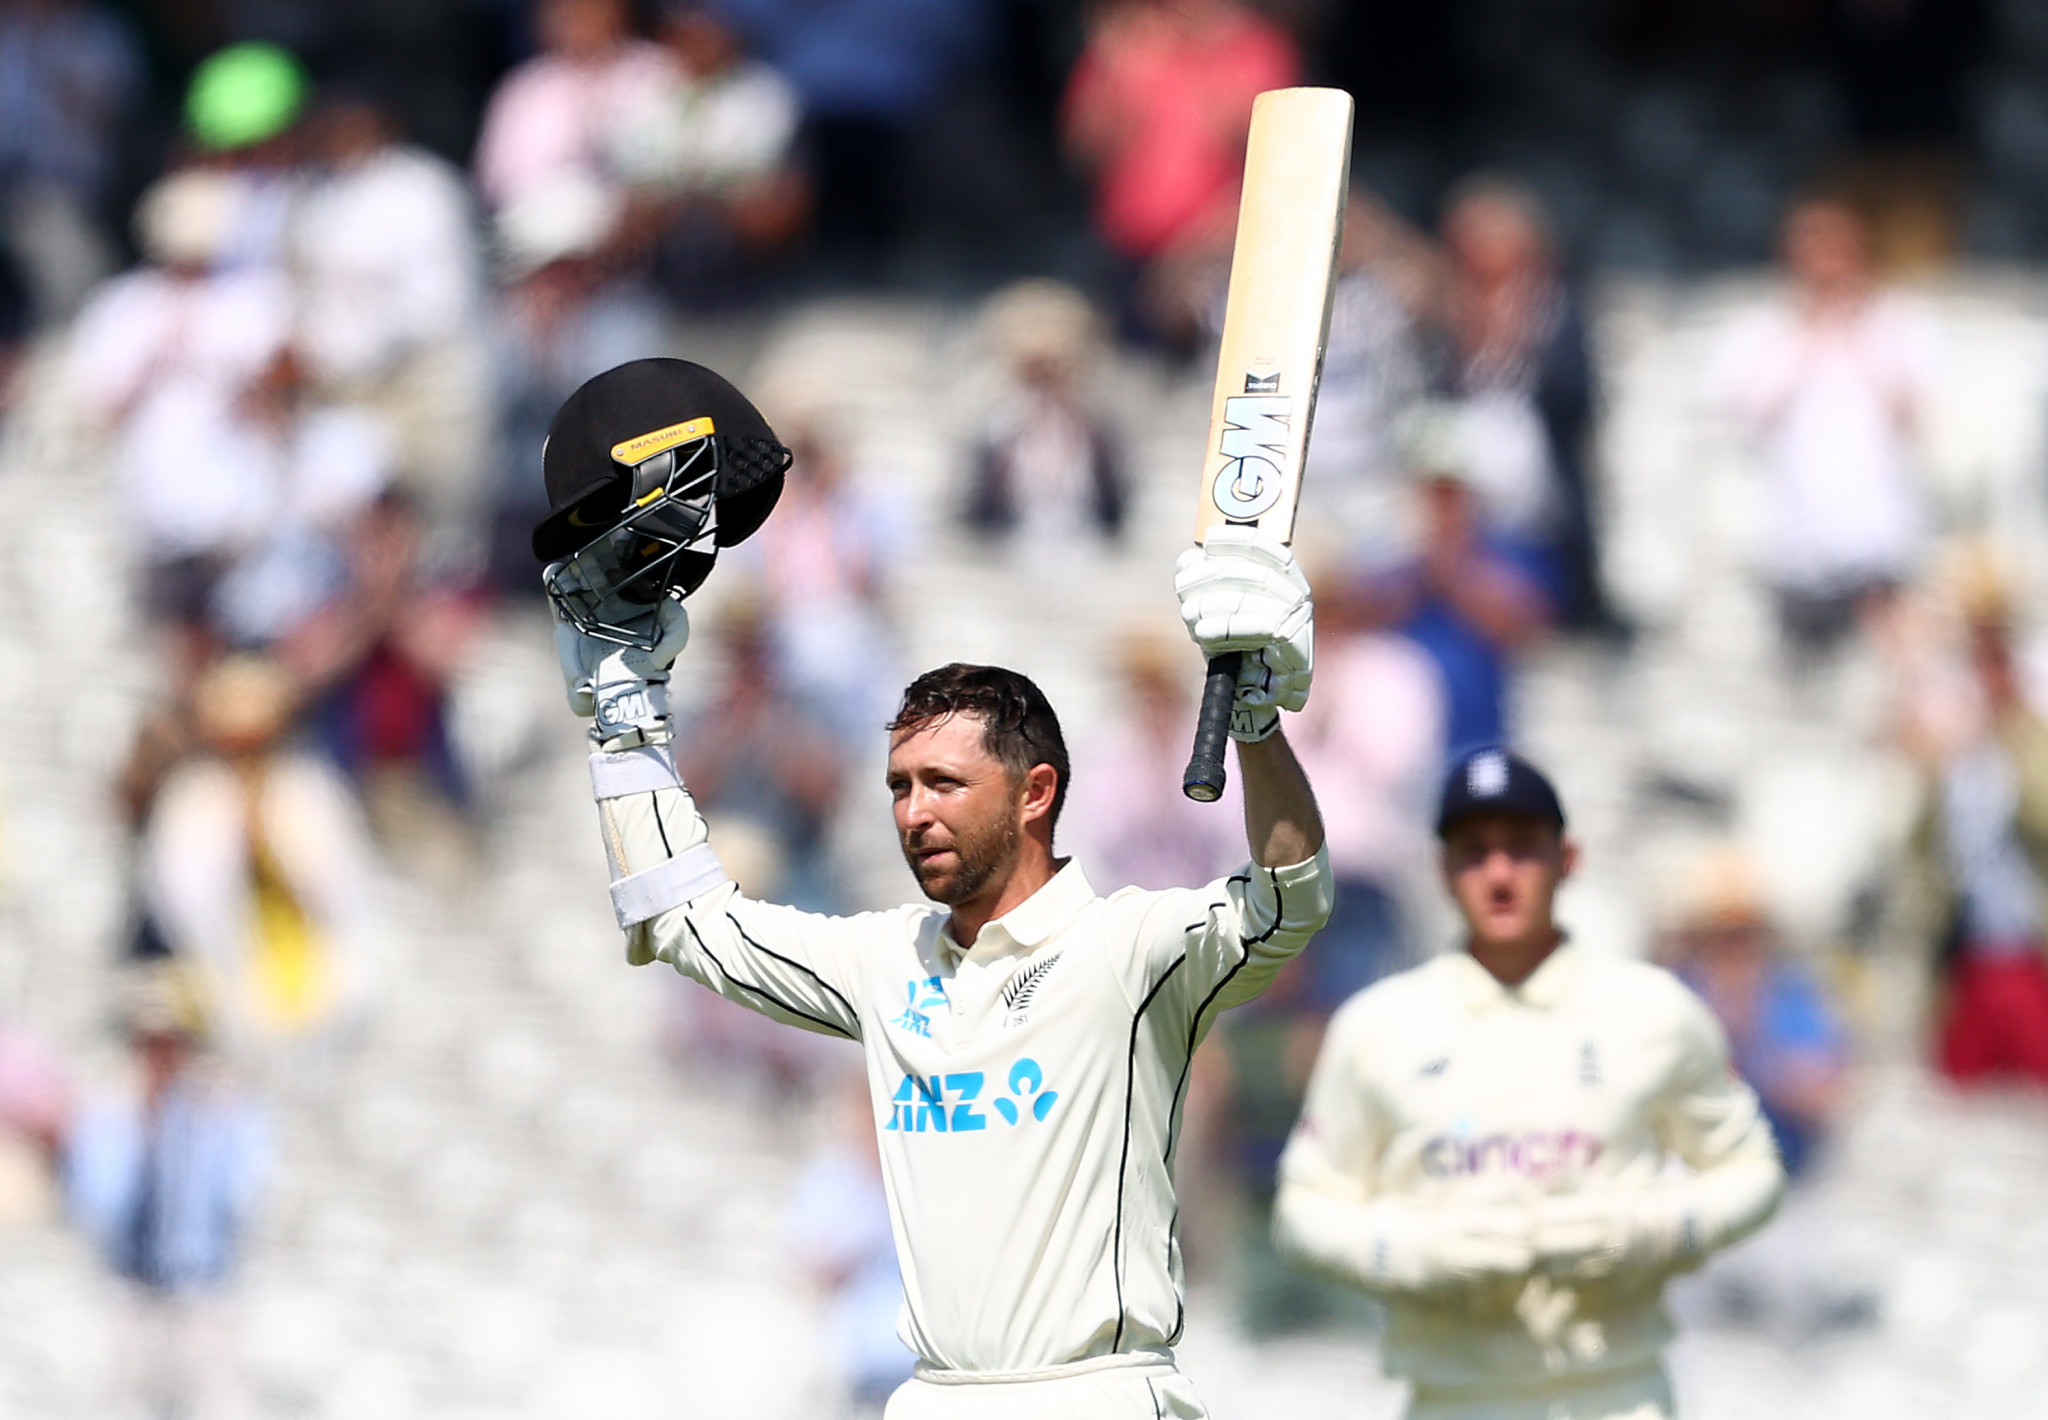 A double century on Test debut at Lord's helped Devon Conway to clinch the Men's ICC Player of the Month award ©Getty Images